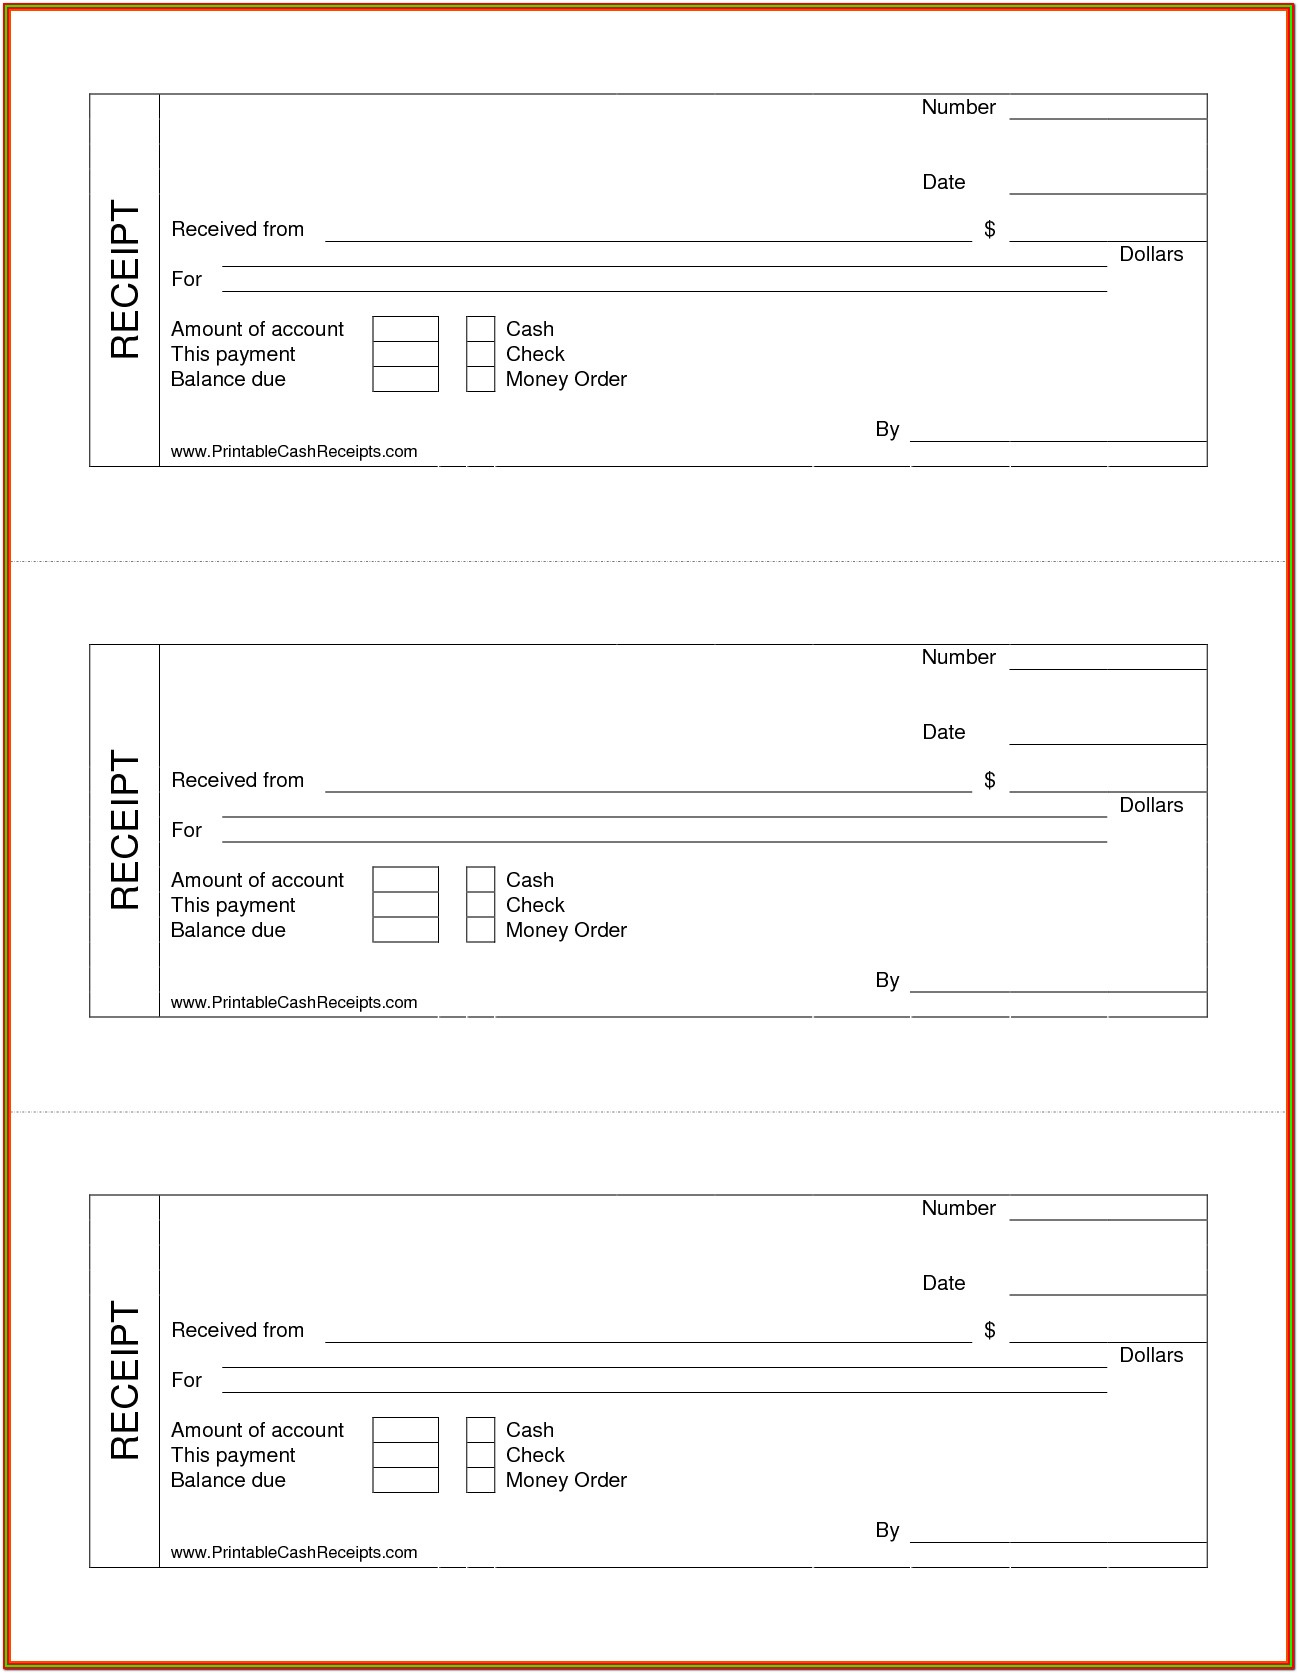 Printable Cash Receipt Forms